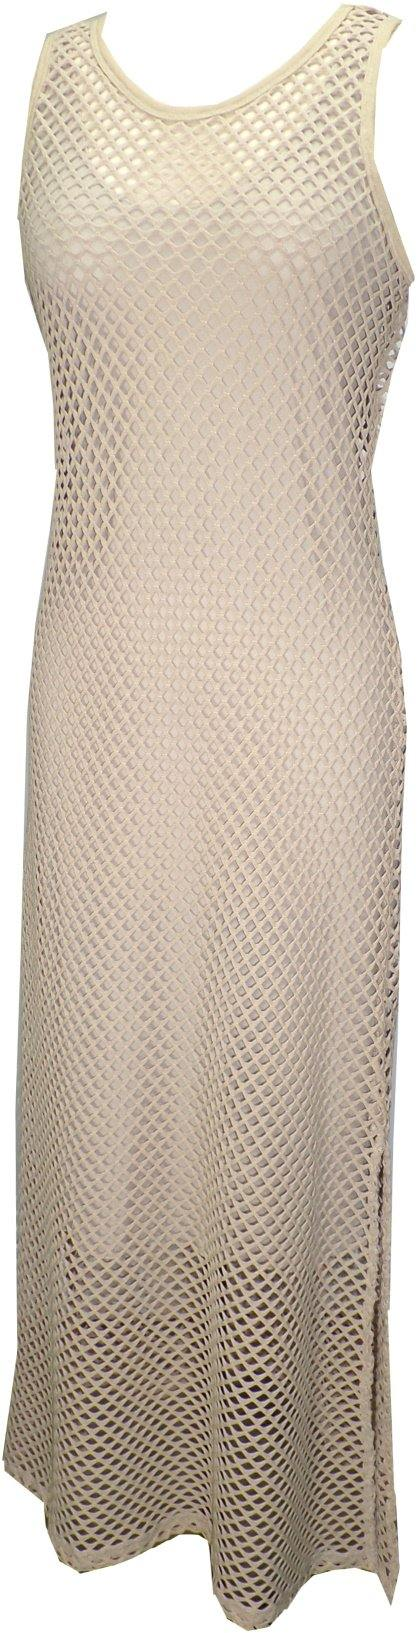 Fishnet Tank Dress